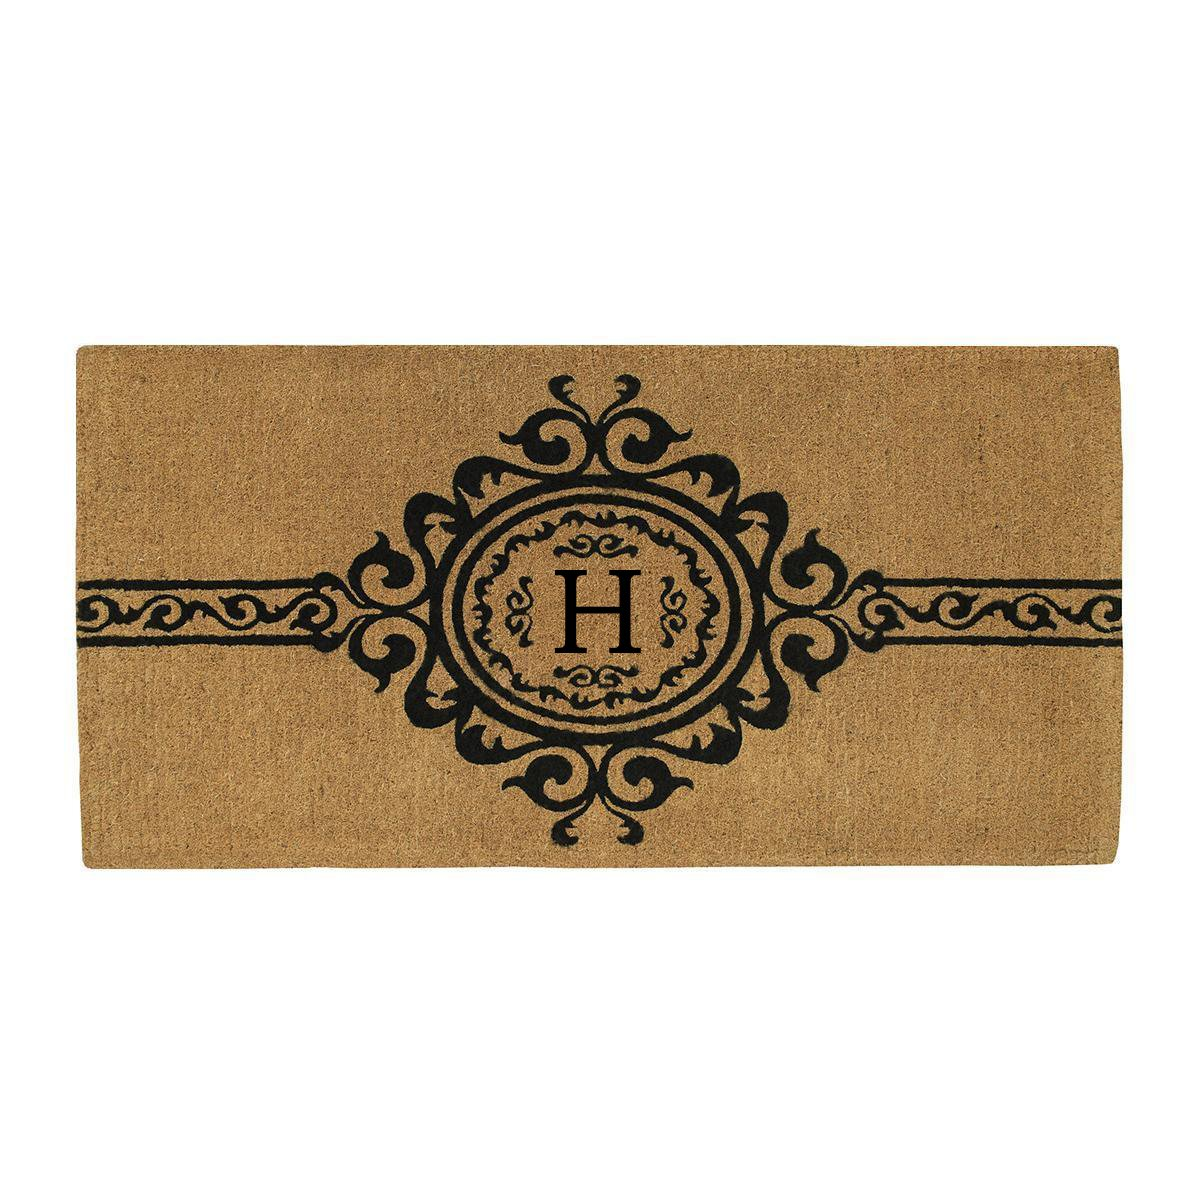 Home & More 180073672H Garbo Extra-thick Doormat, 36'' x 72'' x 1.50'', Monogrammed Letter H, Natural/Black